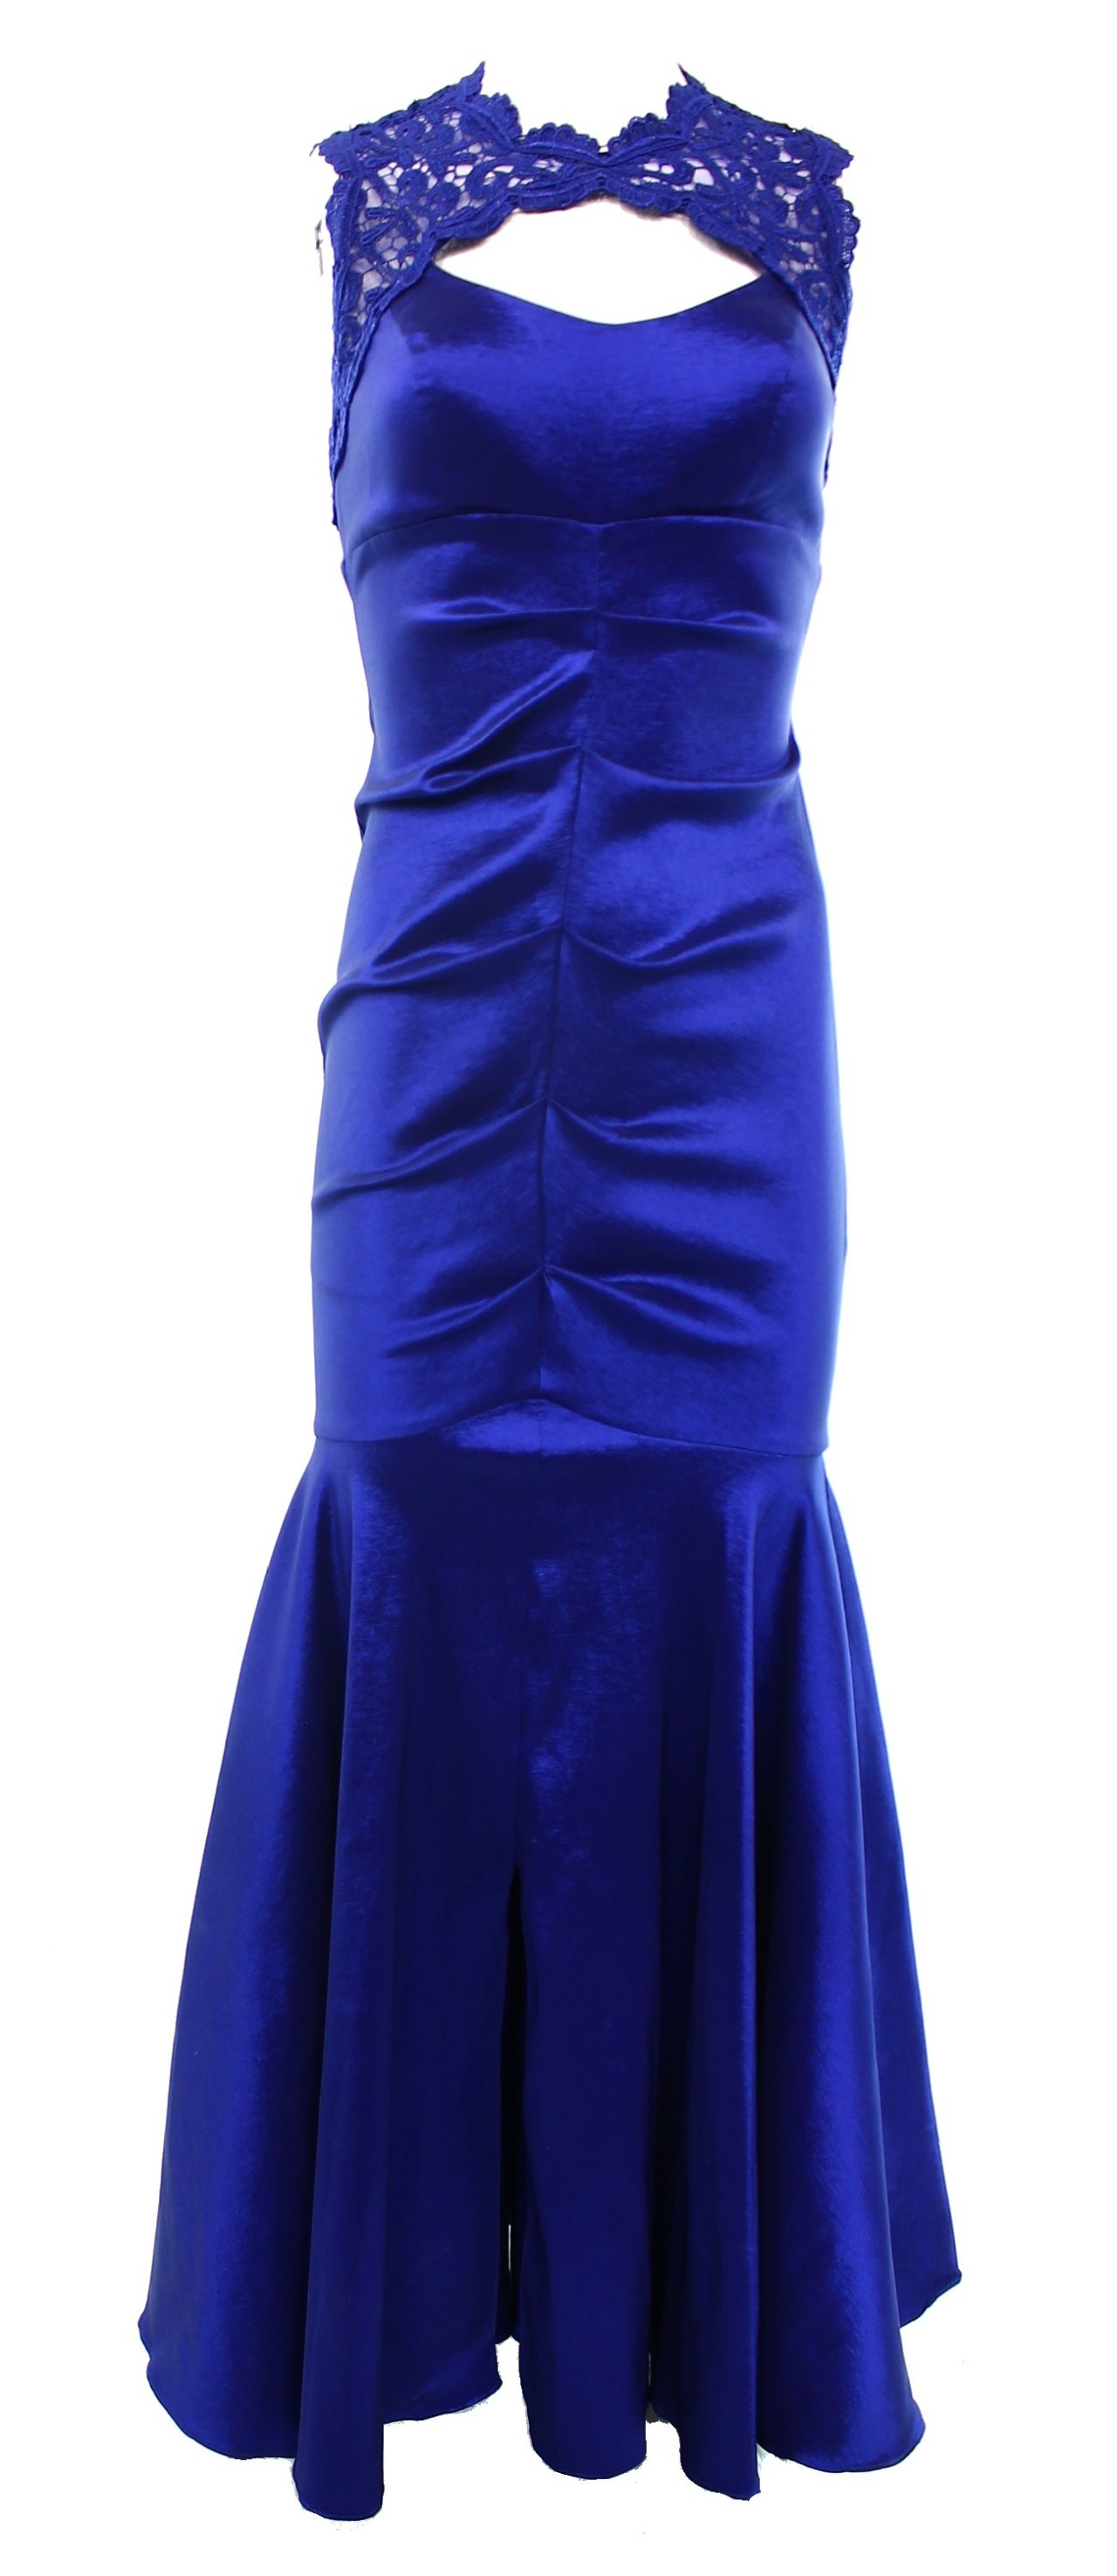 Xscape NEW Women\'s Size 12 Royal Blue Lace Yoke Bodycon Mermaid Gown ...